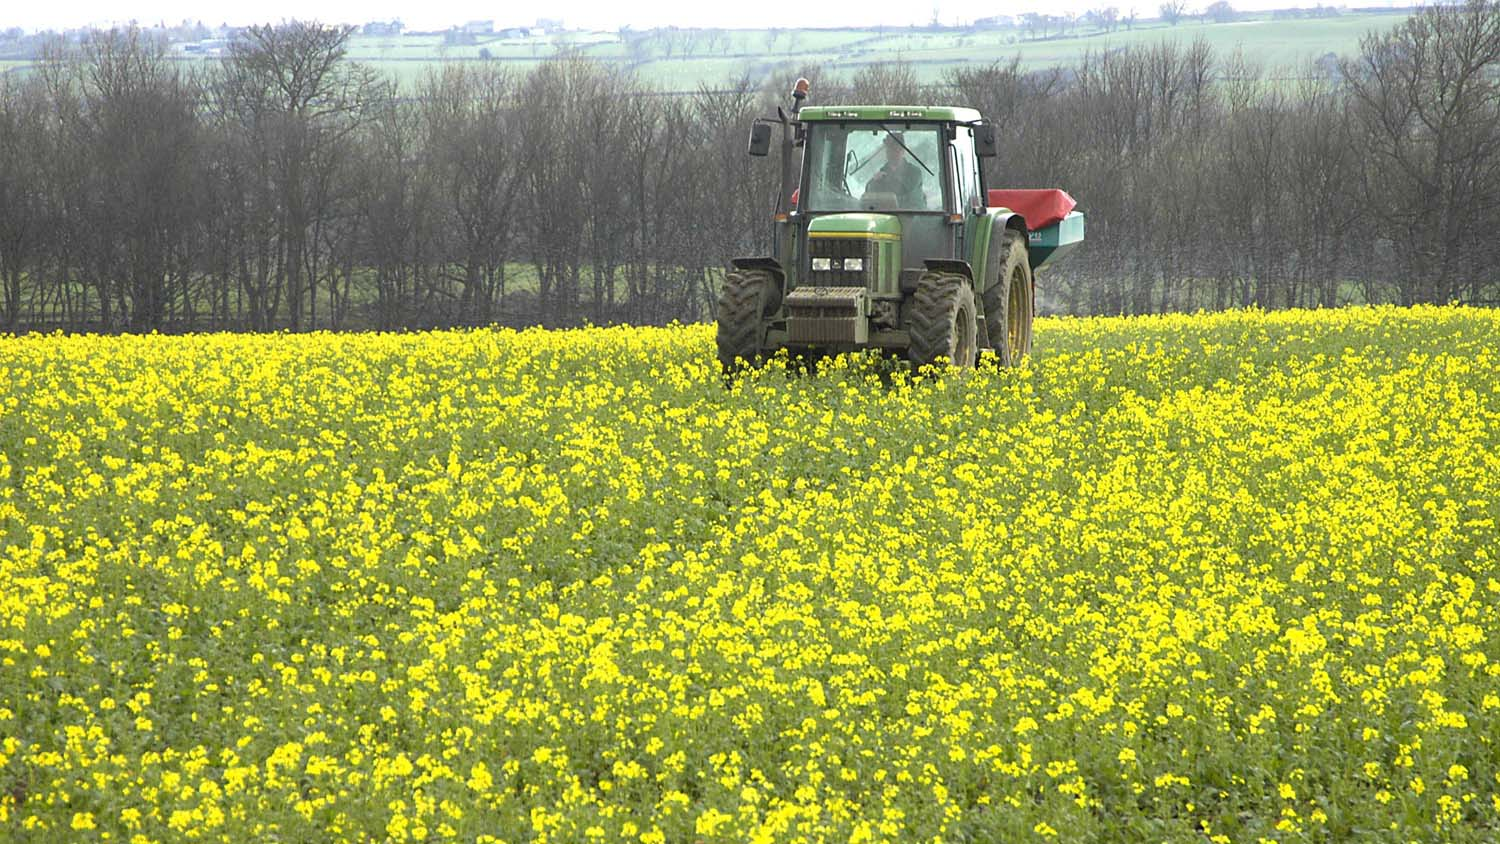 Farmers advised to take aggressive cost management steps as squeeze on margins continues